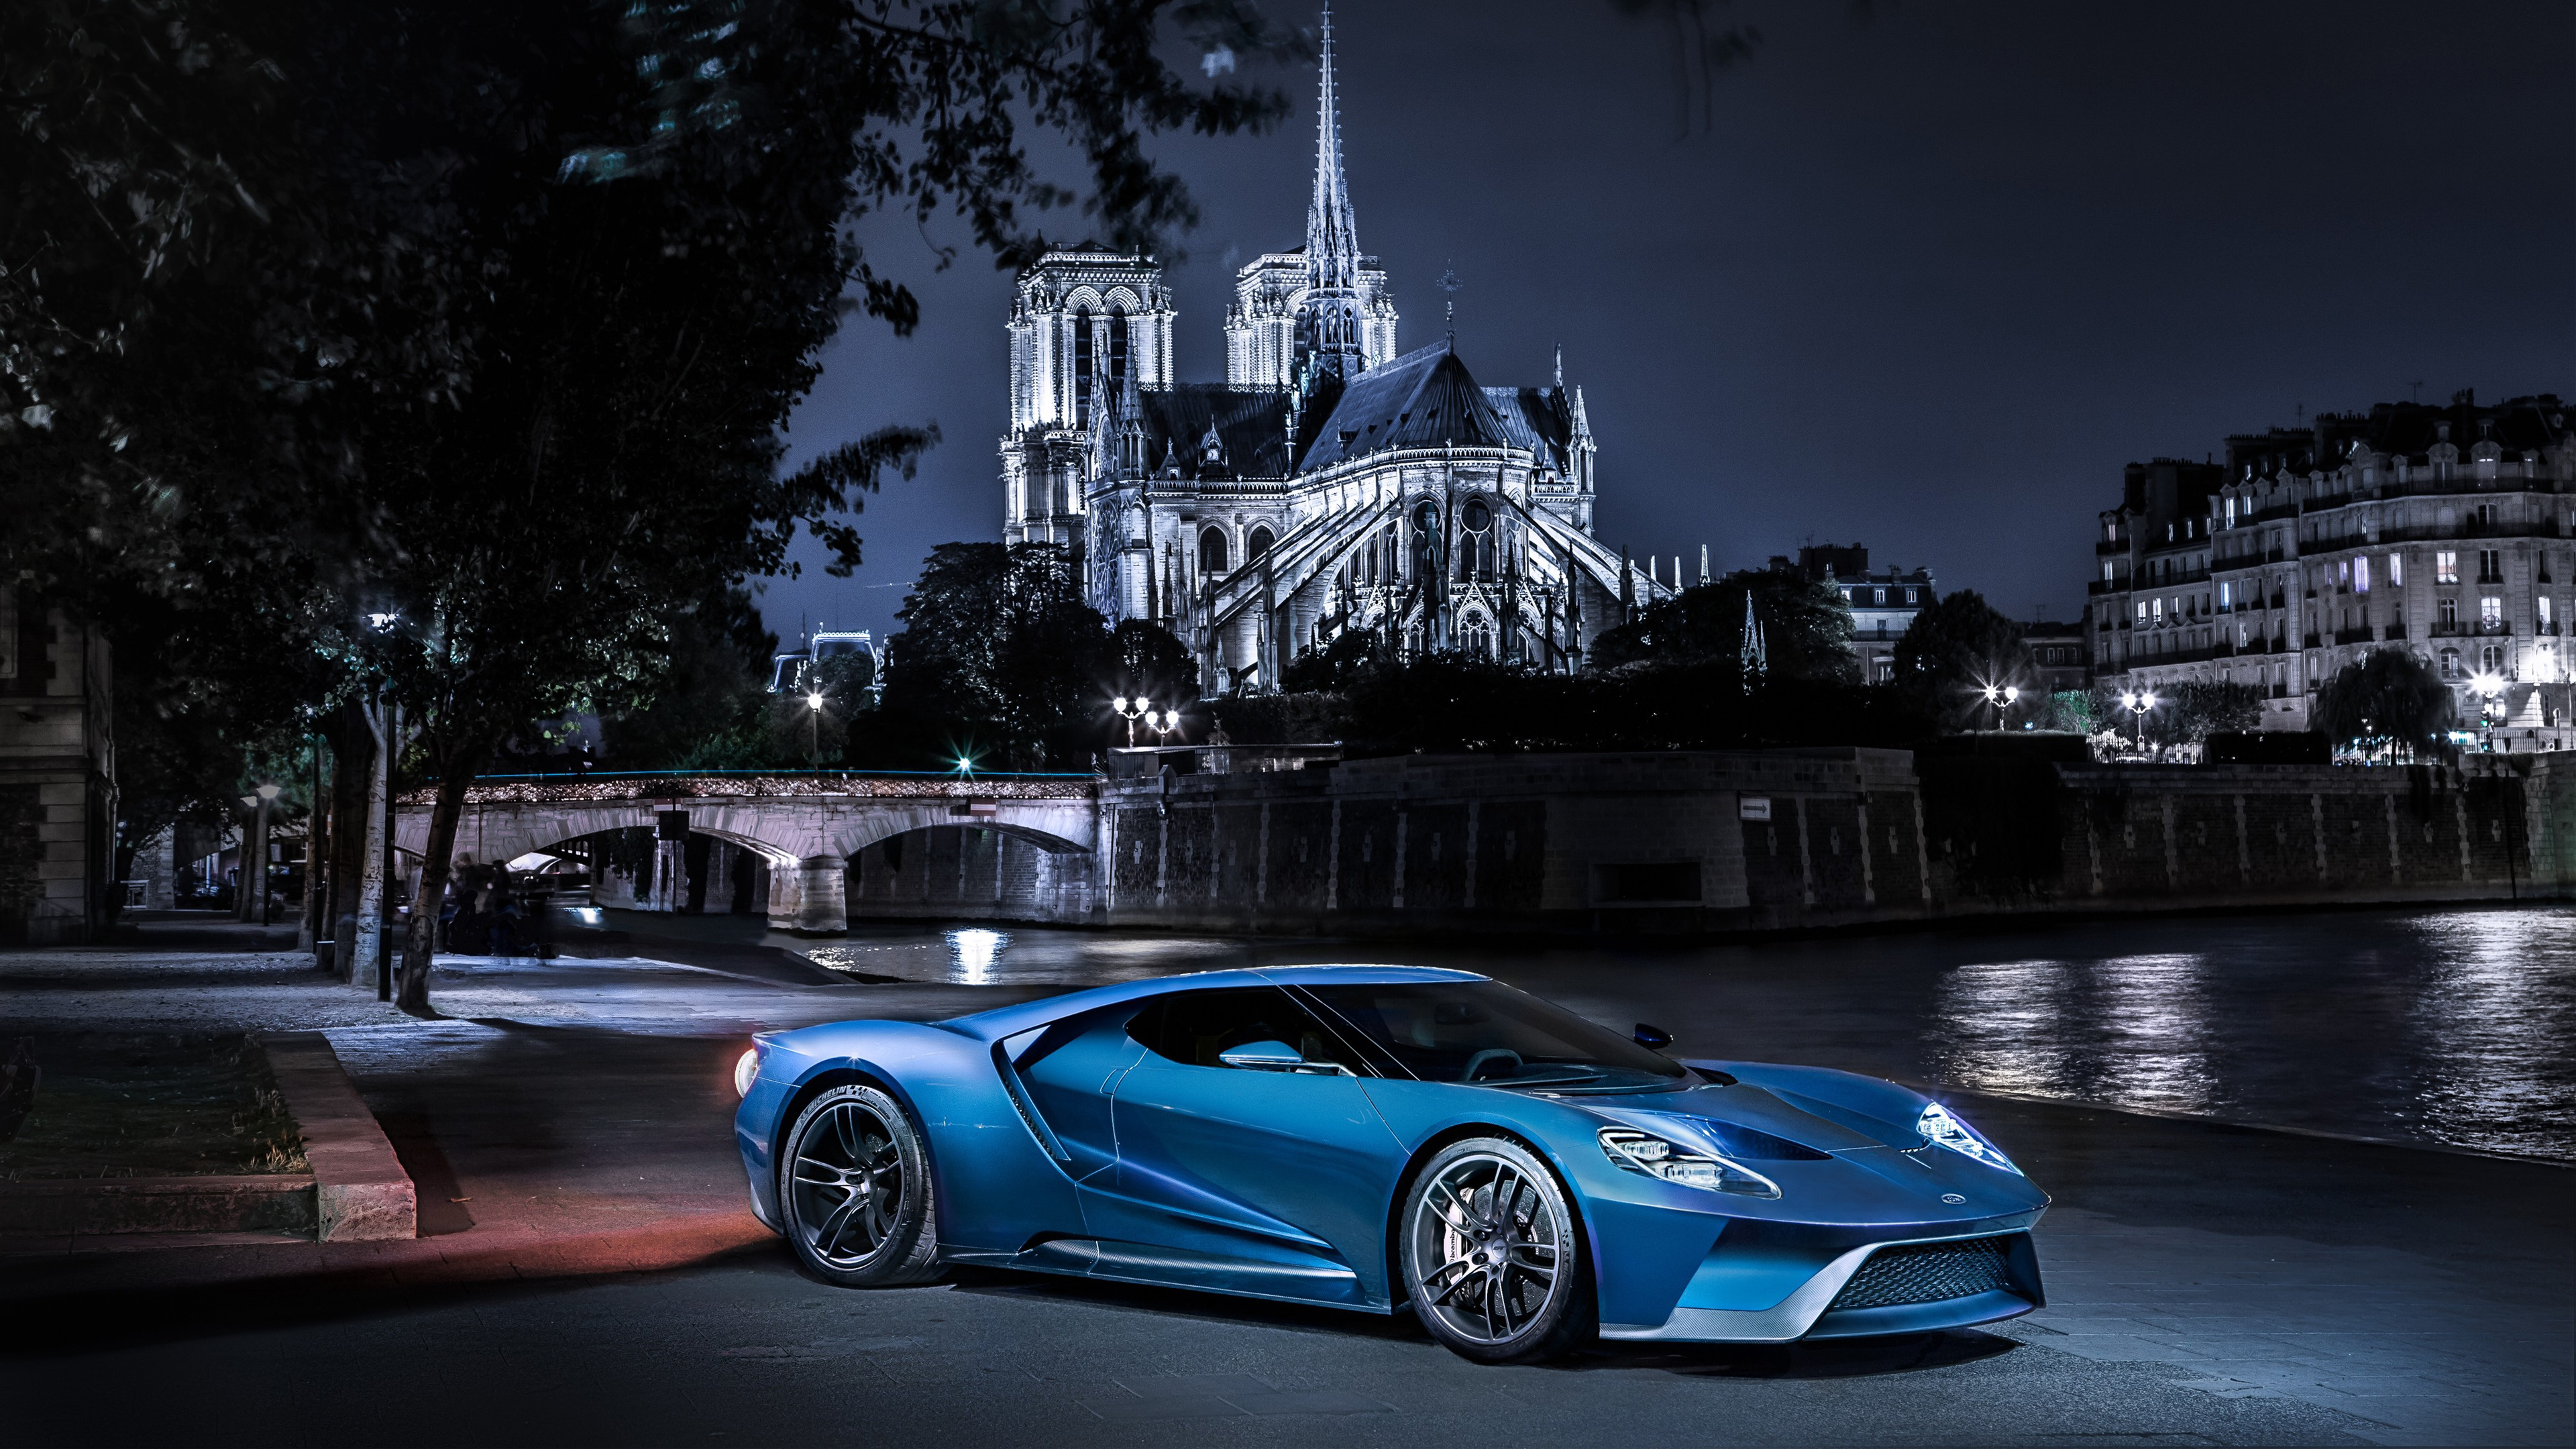 Ford GT Supercar Wallpaper HD Car Wallpapers 3840x2160